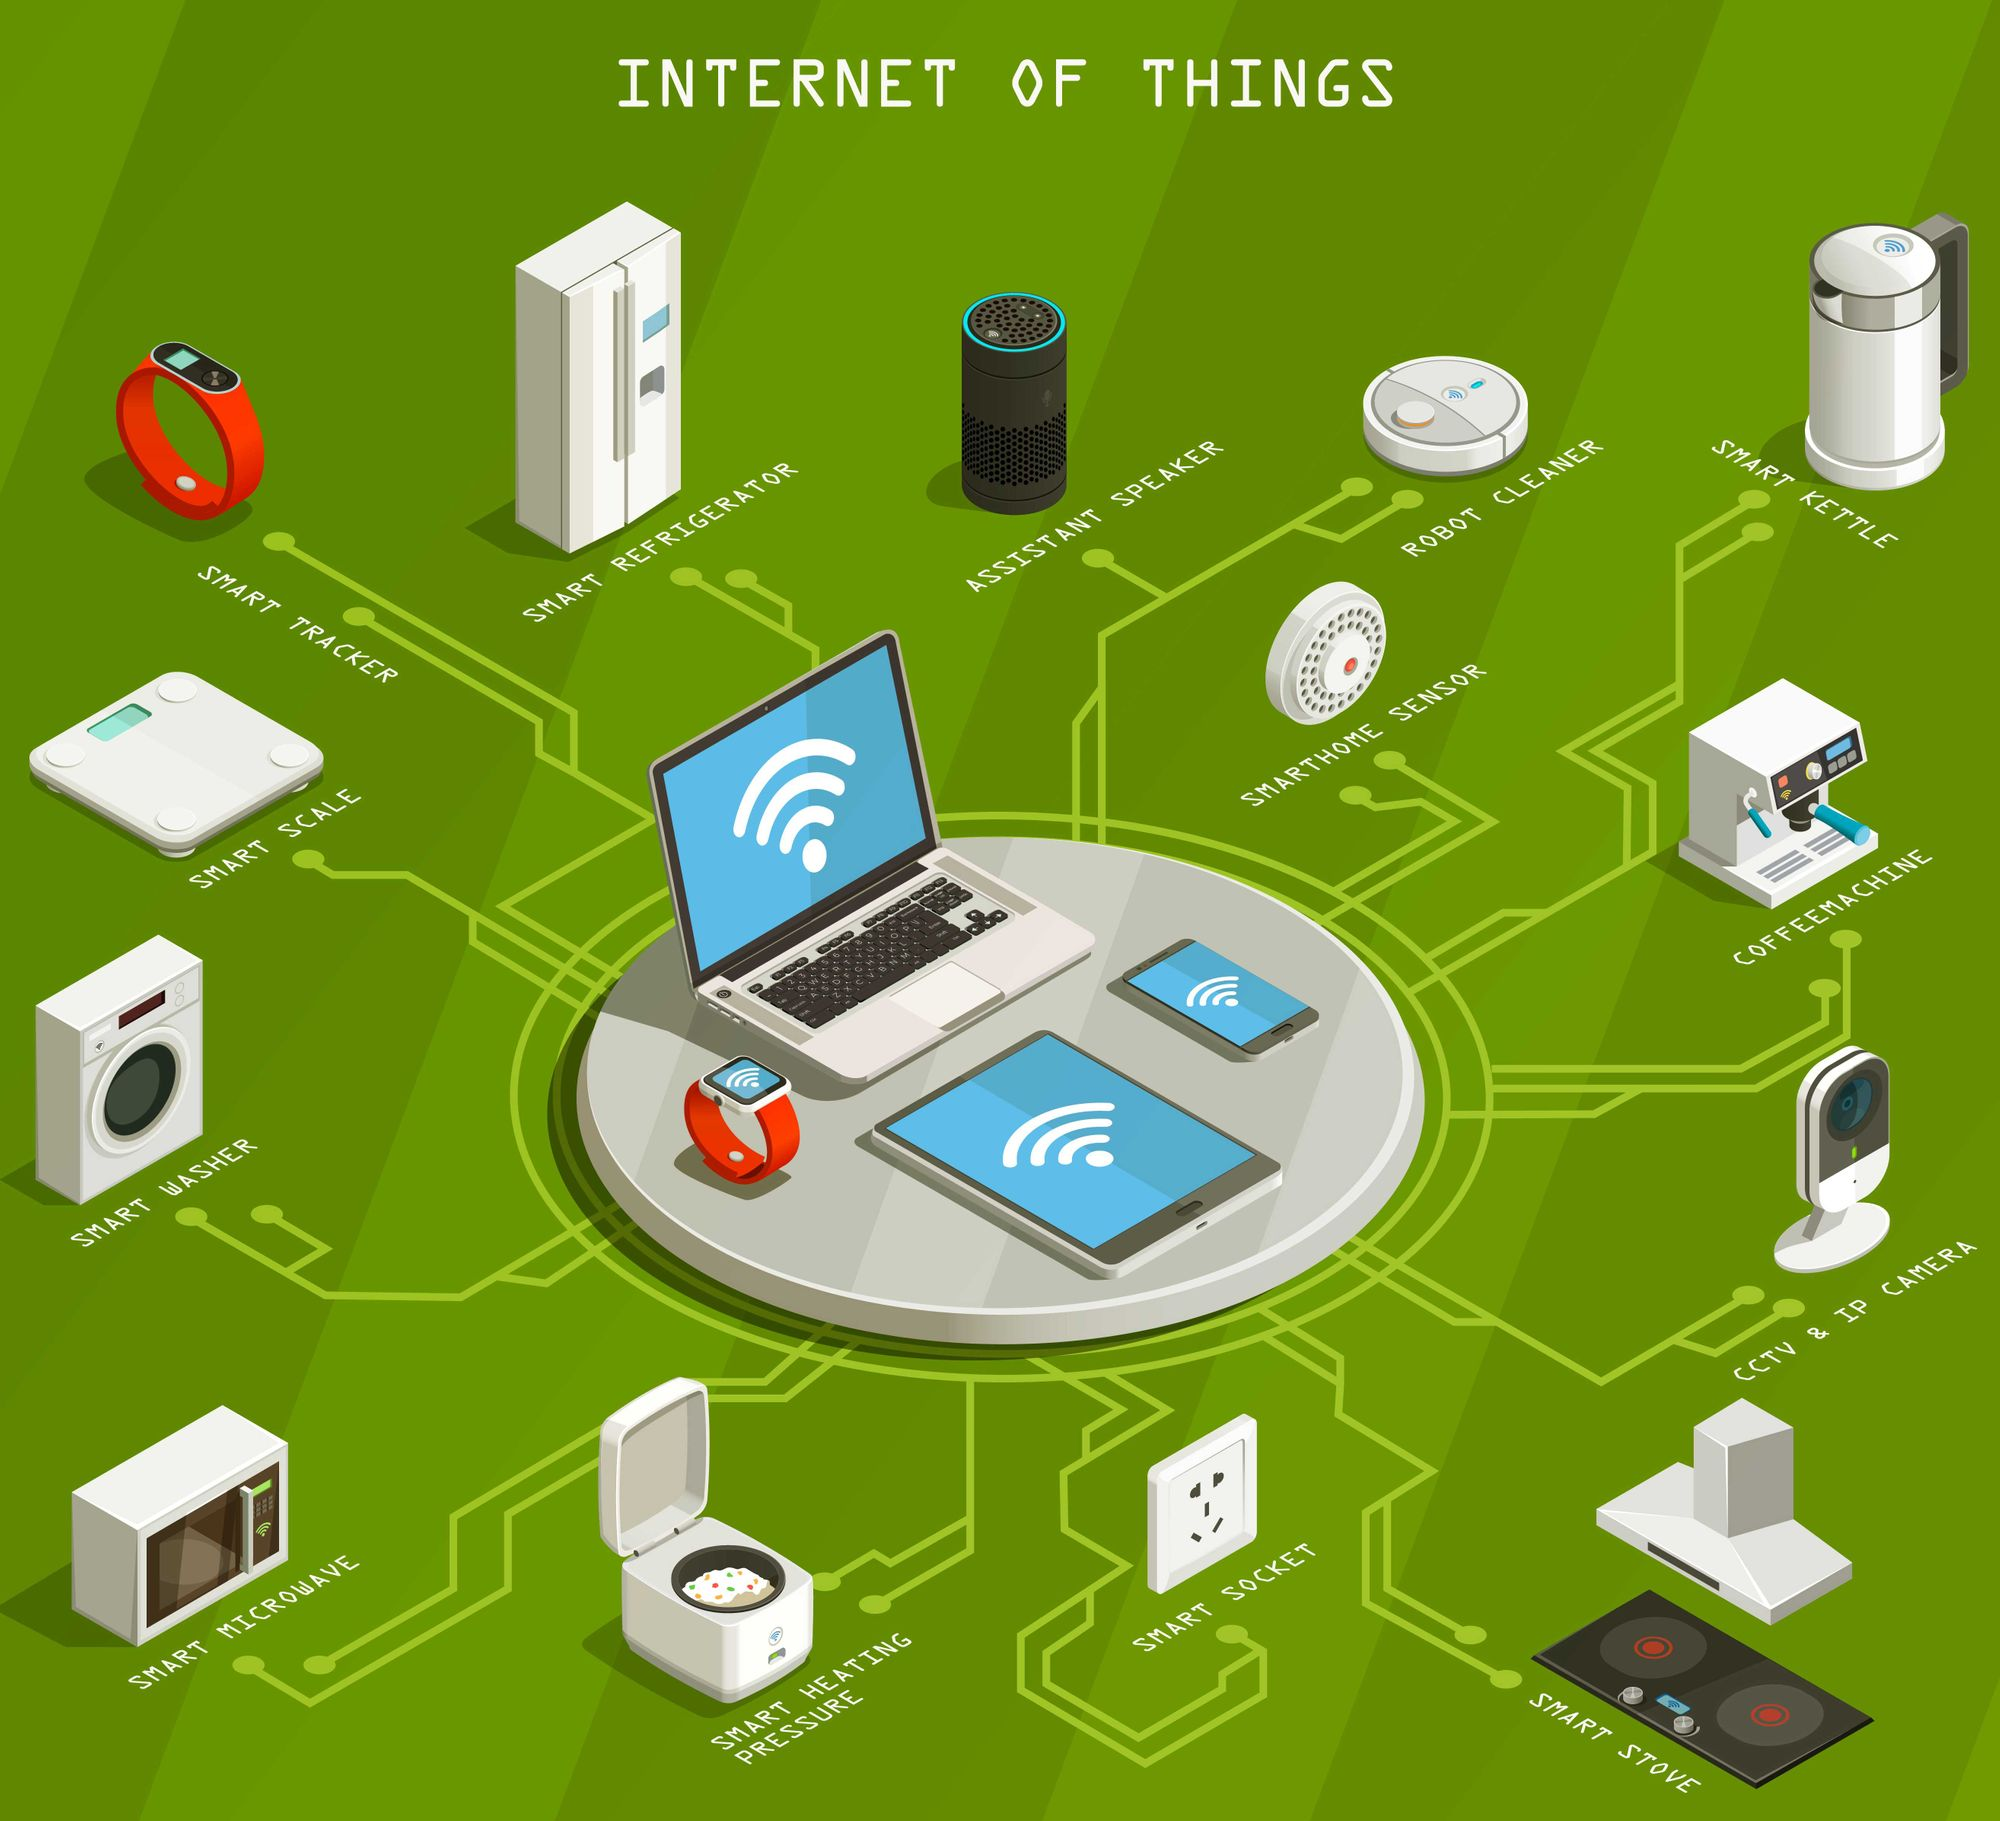 IoT: What sectors or businesses will make the most of it?